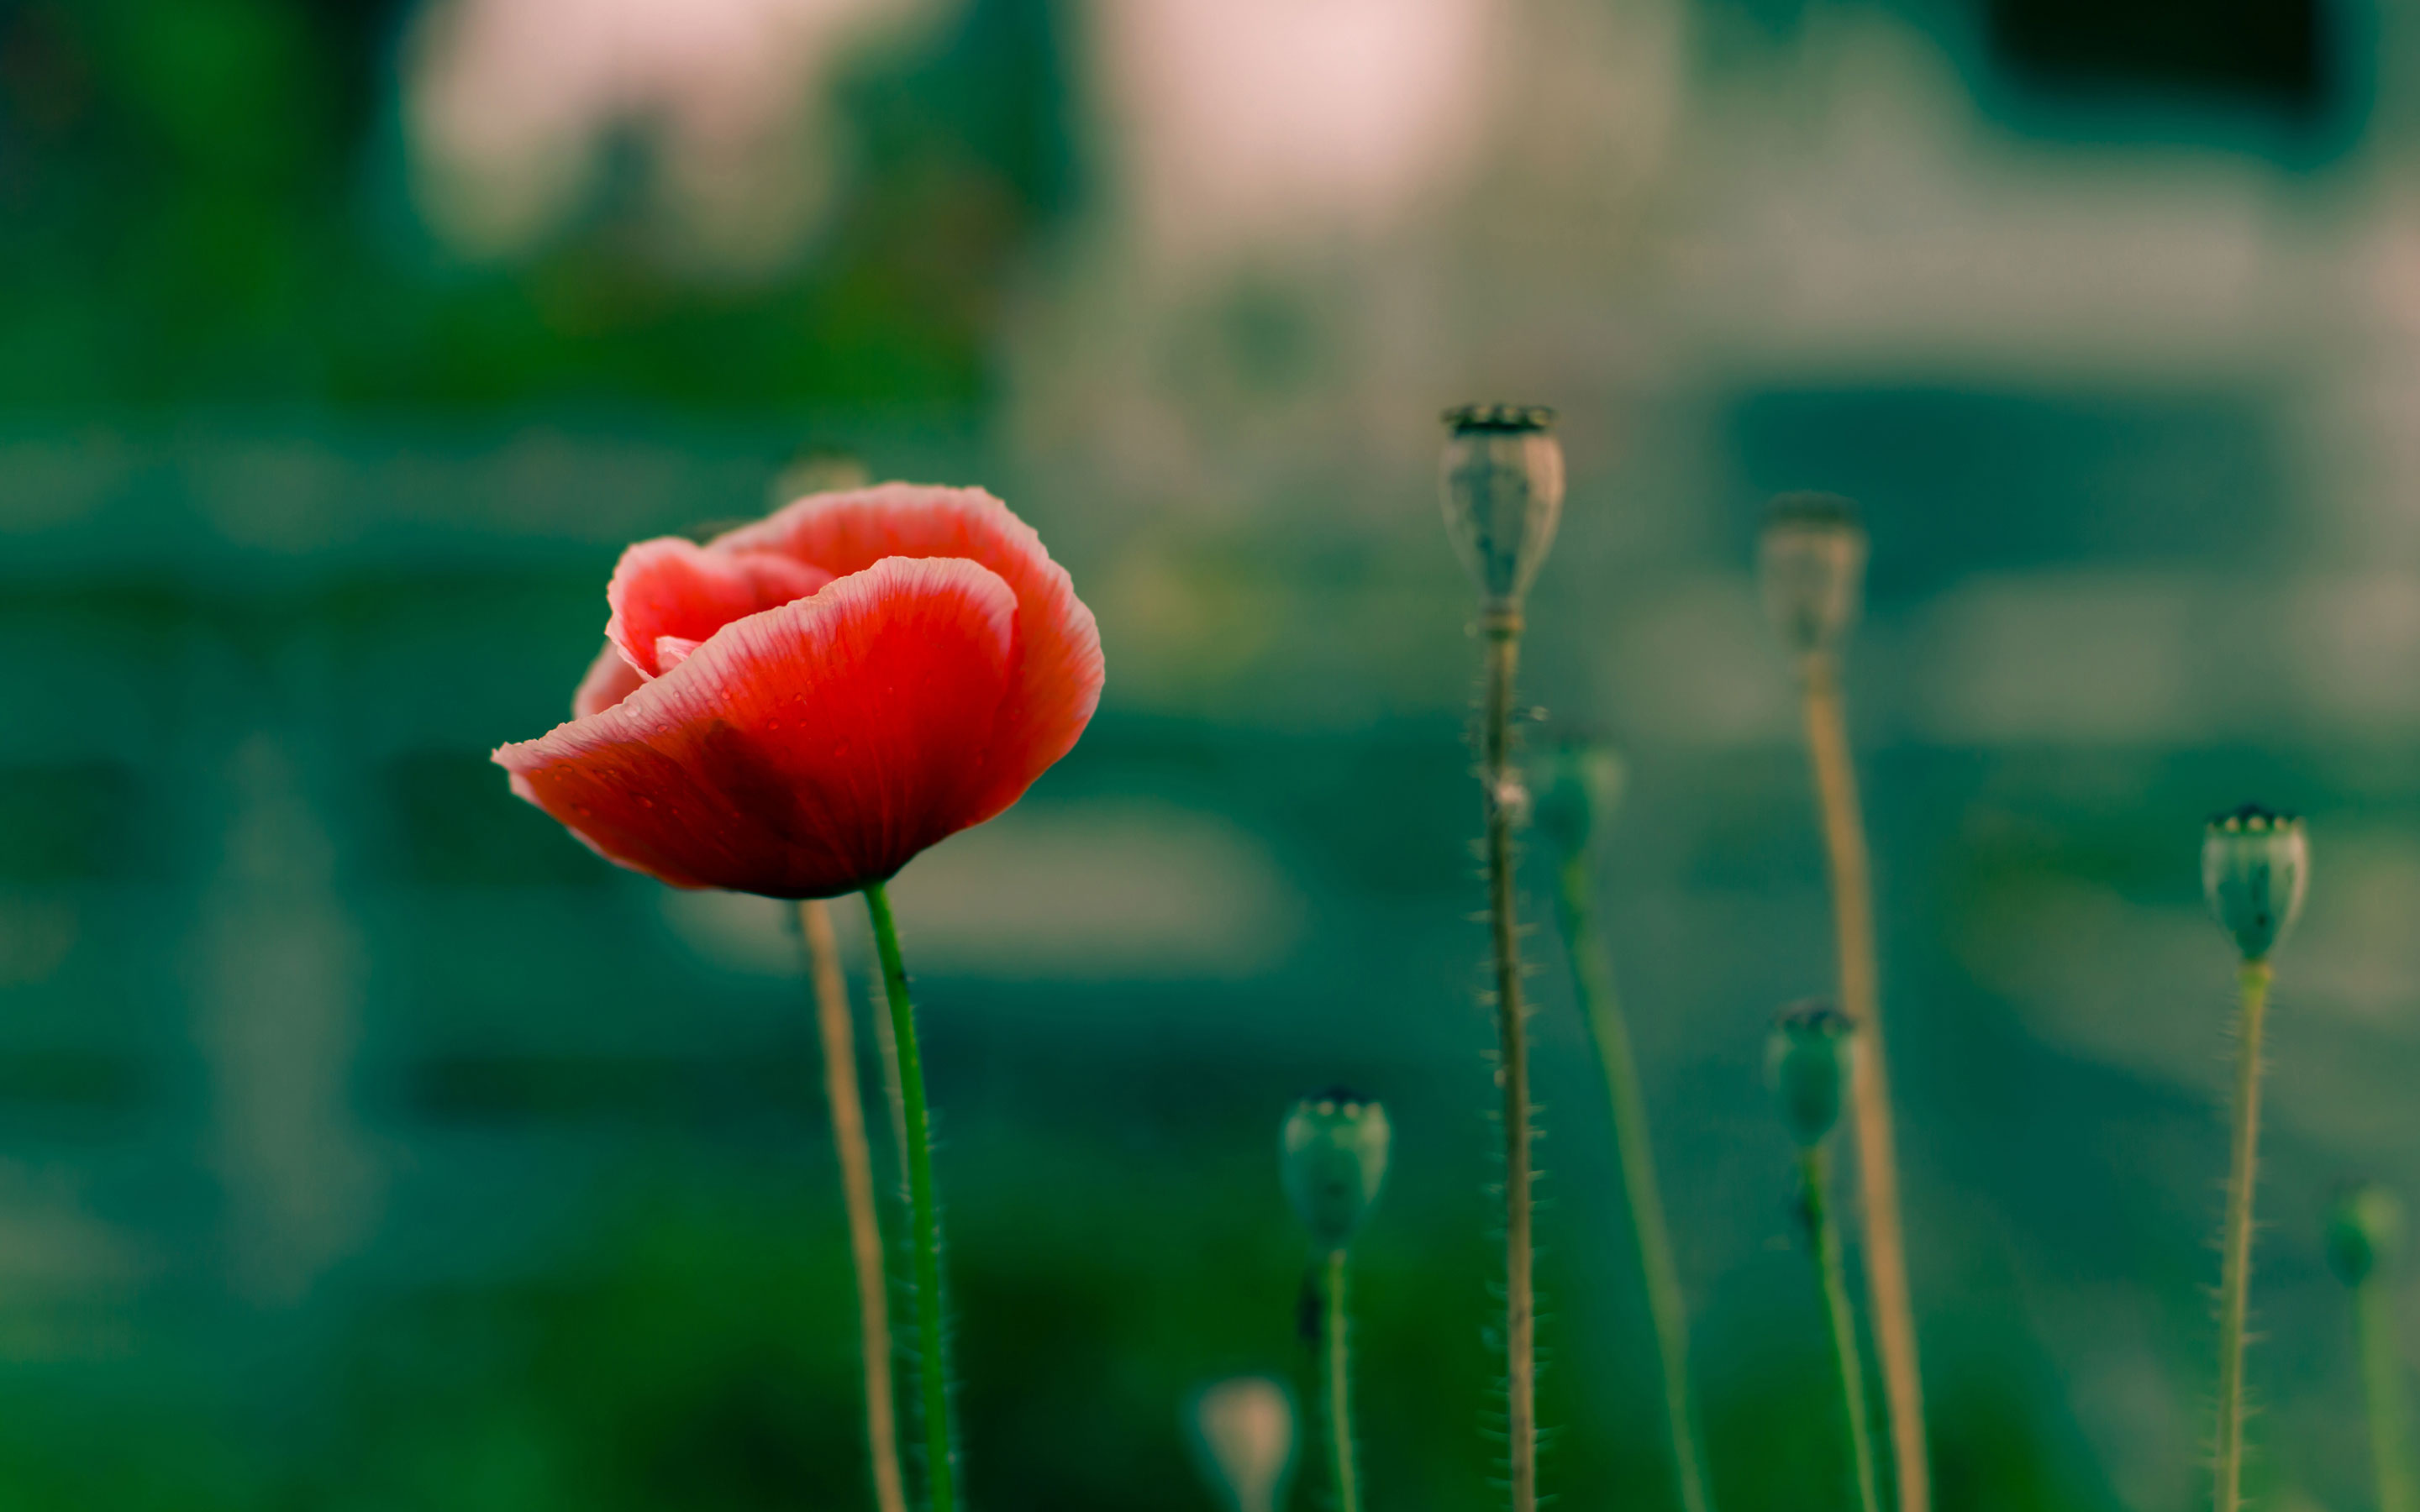 Red poppy flower photo